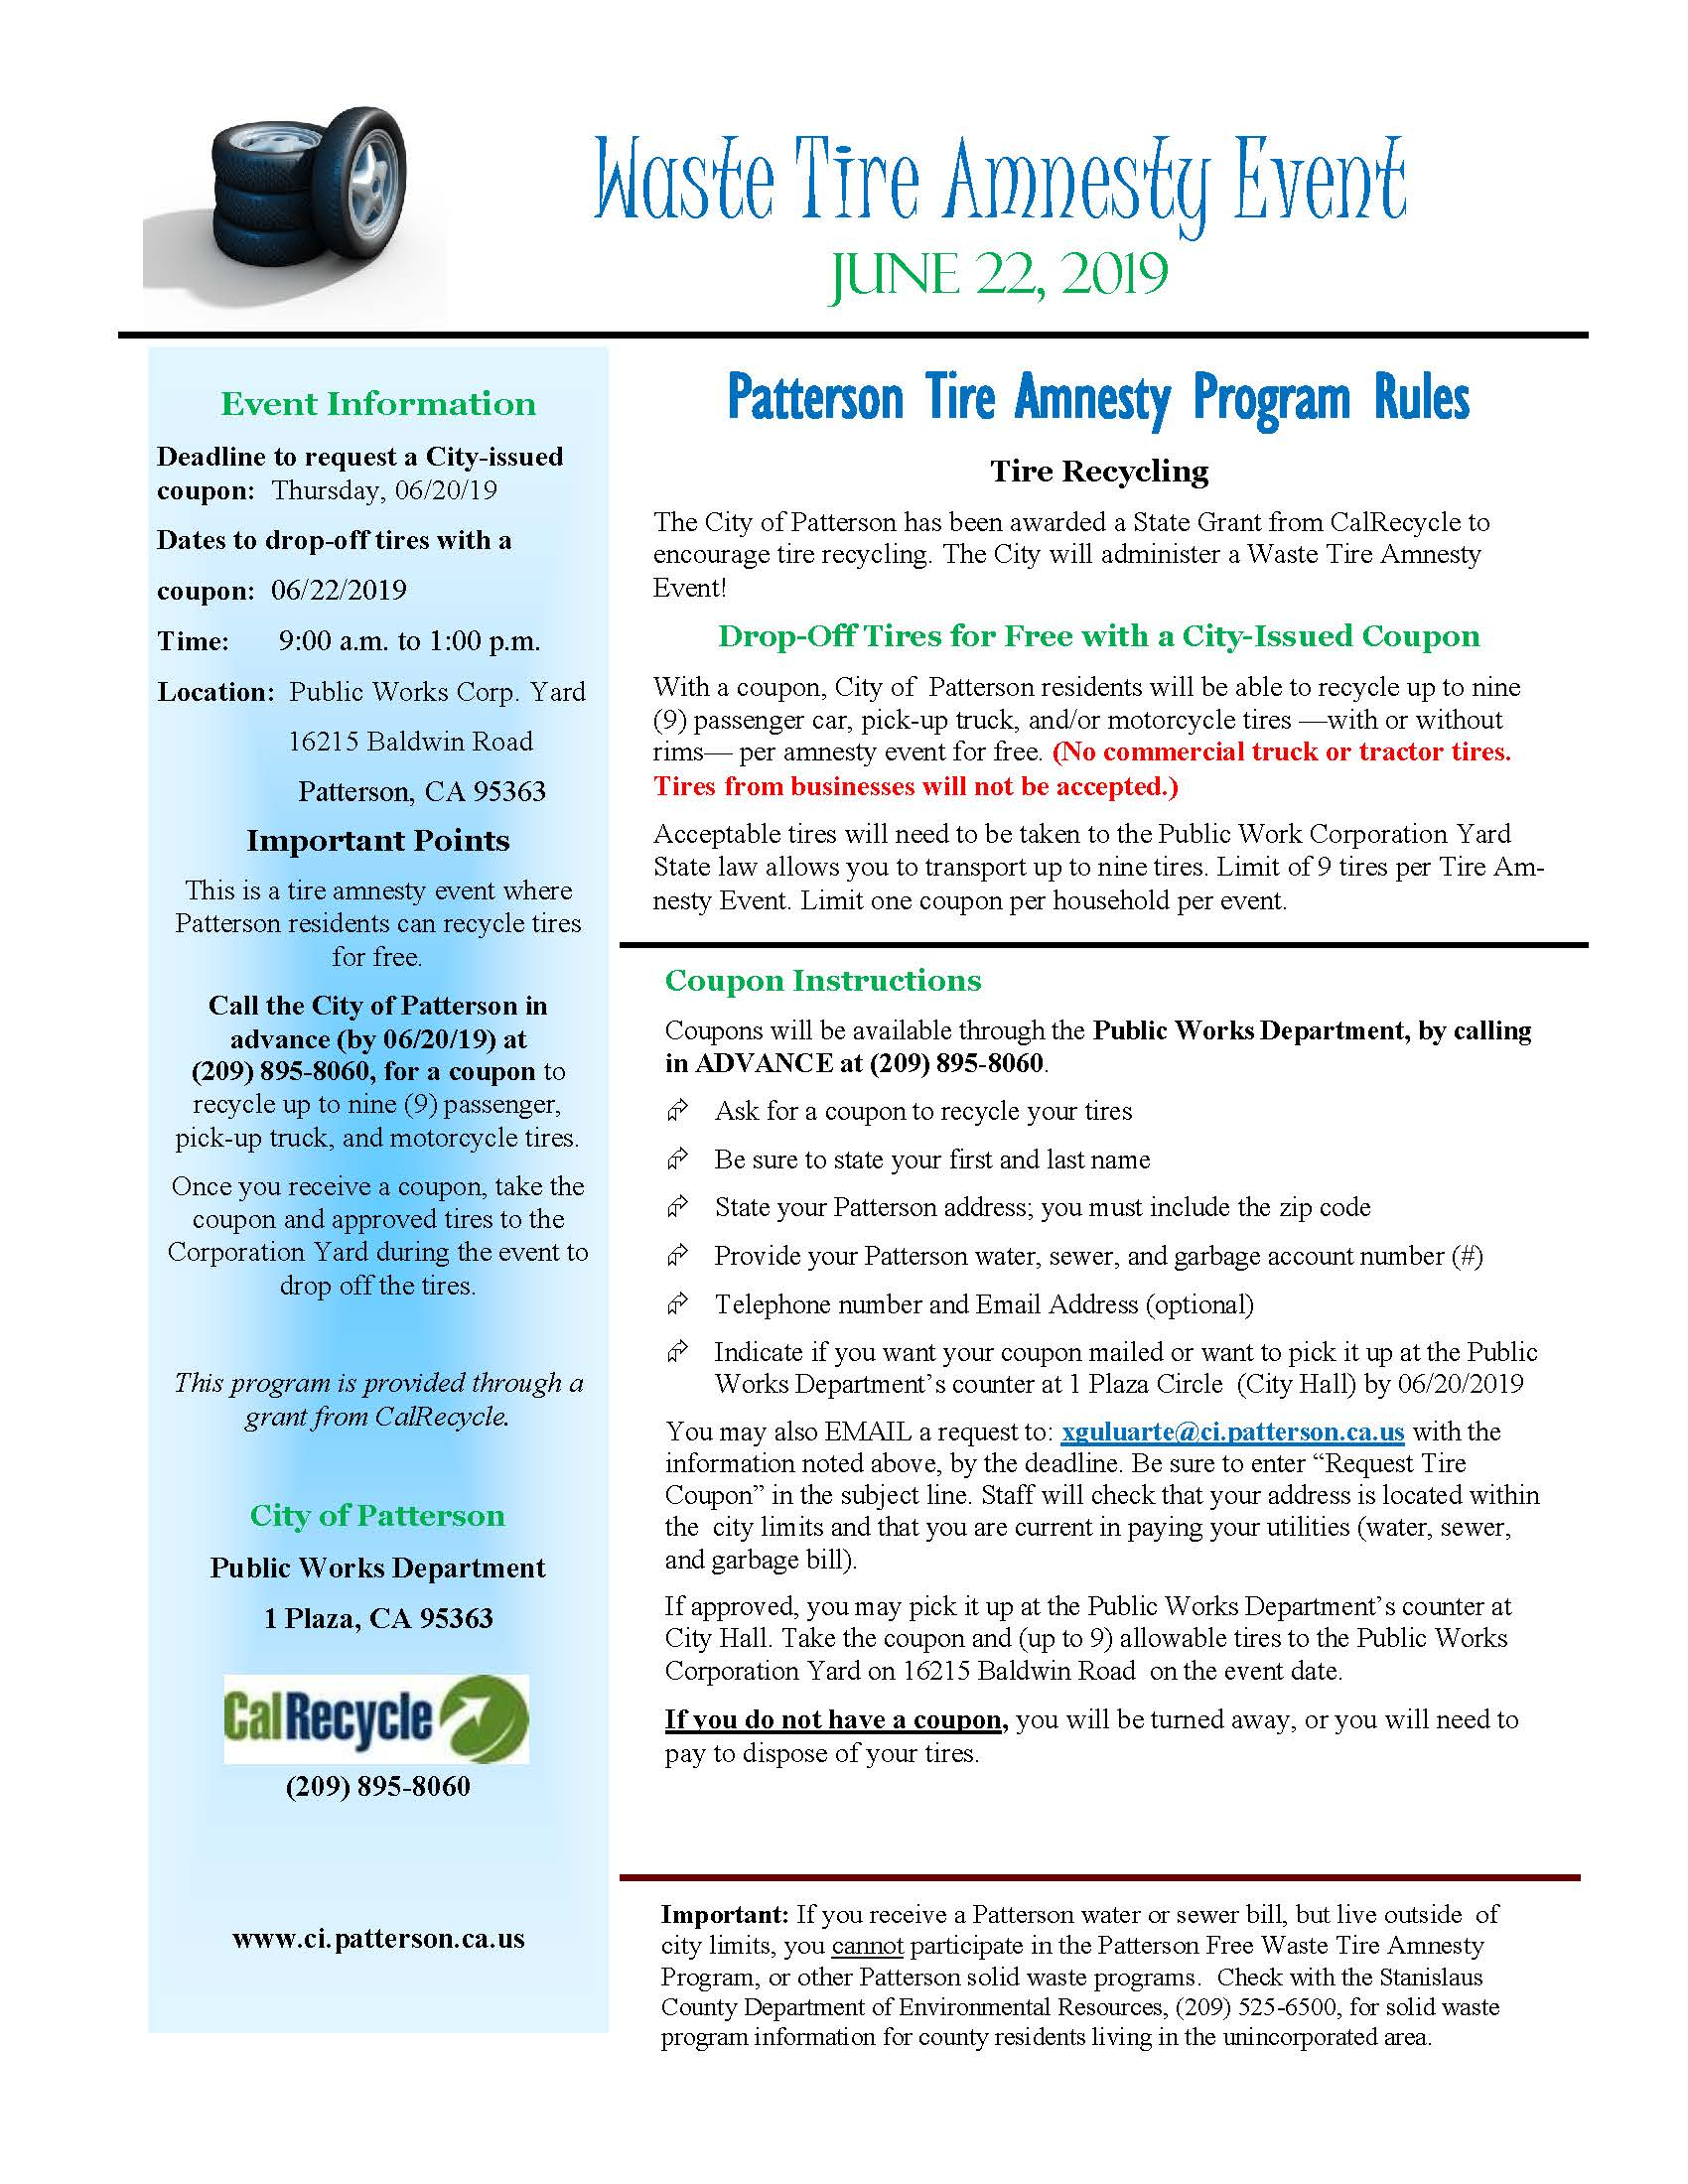 Waste Tire Amnesty Event June 2019 flier 2.0_Page_1